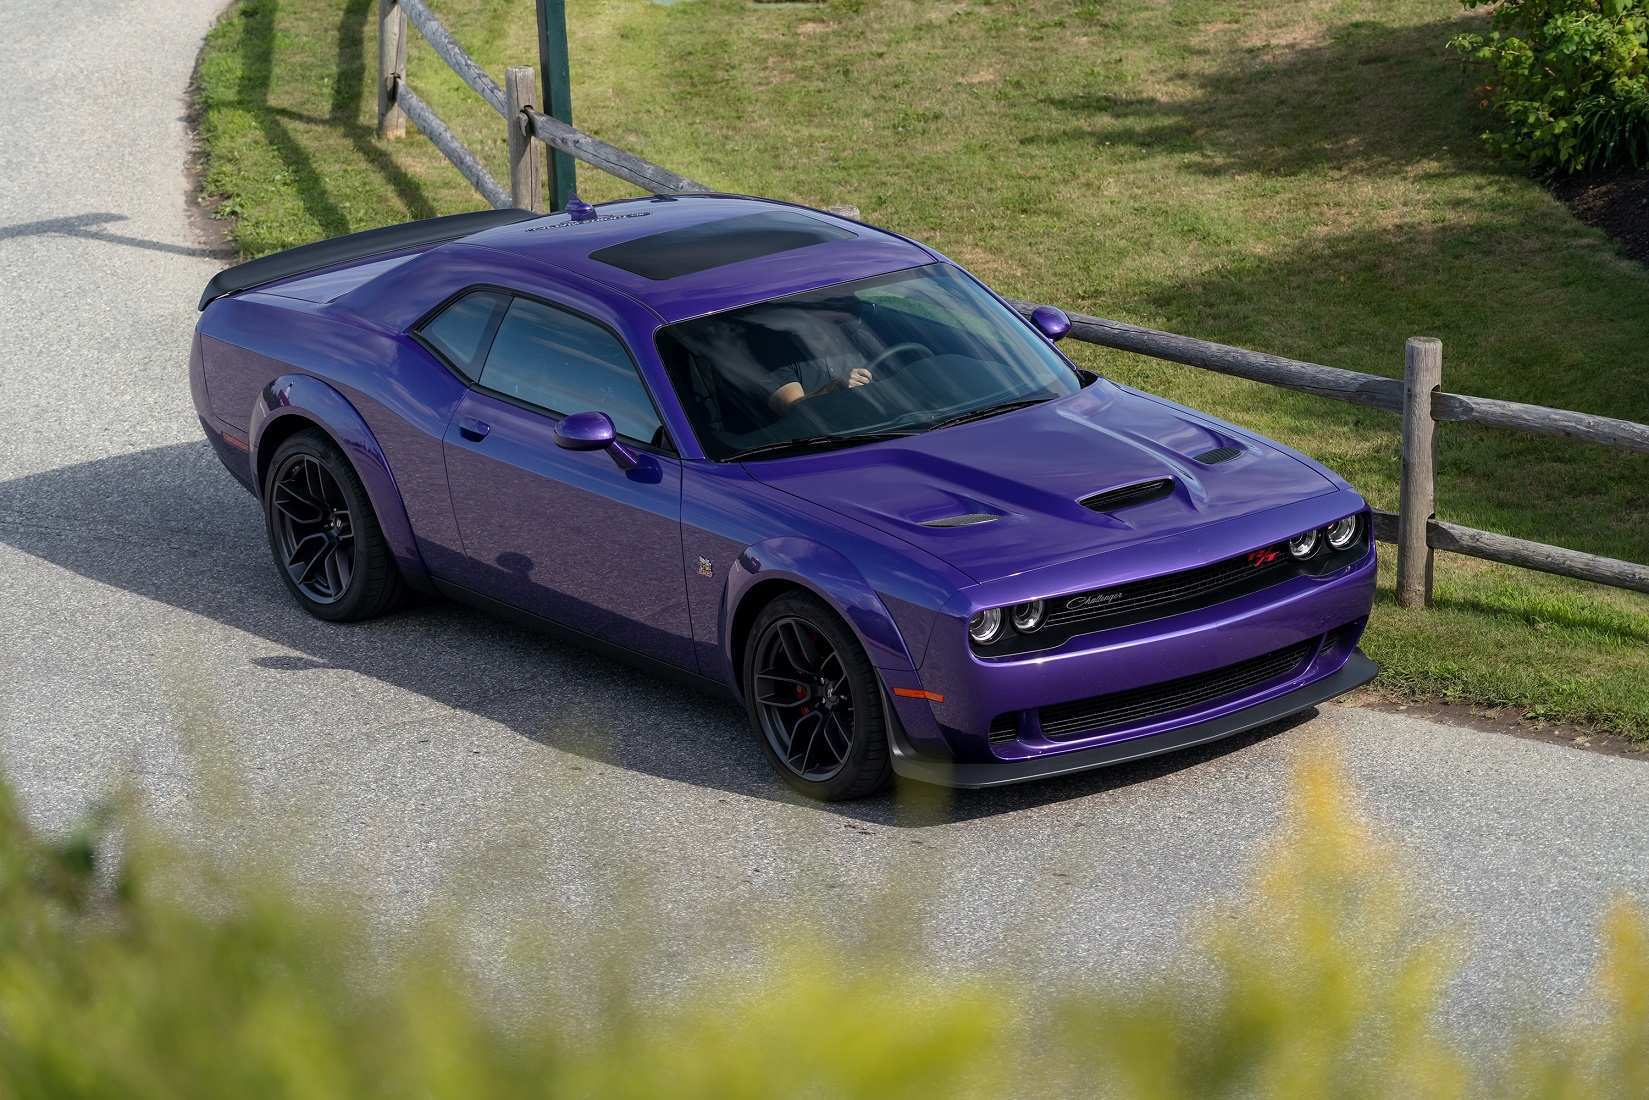 40 Gallery of 2019 Dodge Hellcat Widebody Price with 2019 Dodge Hellcat Widebody